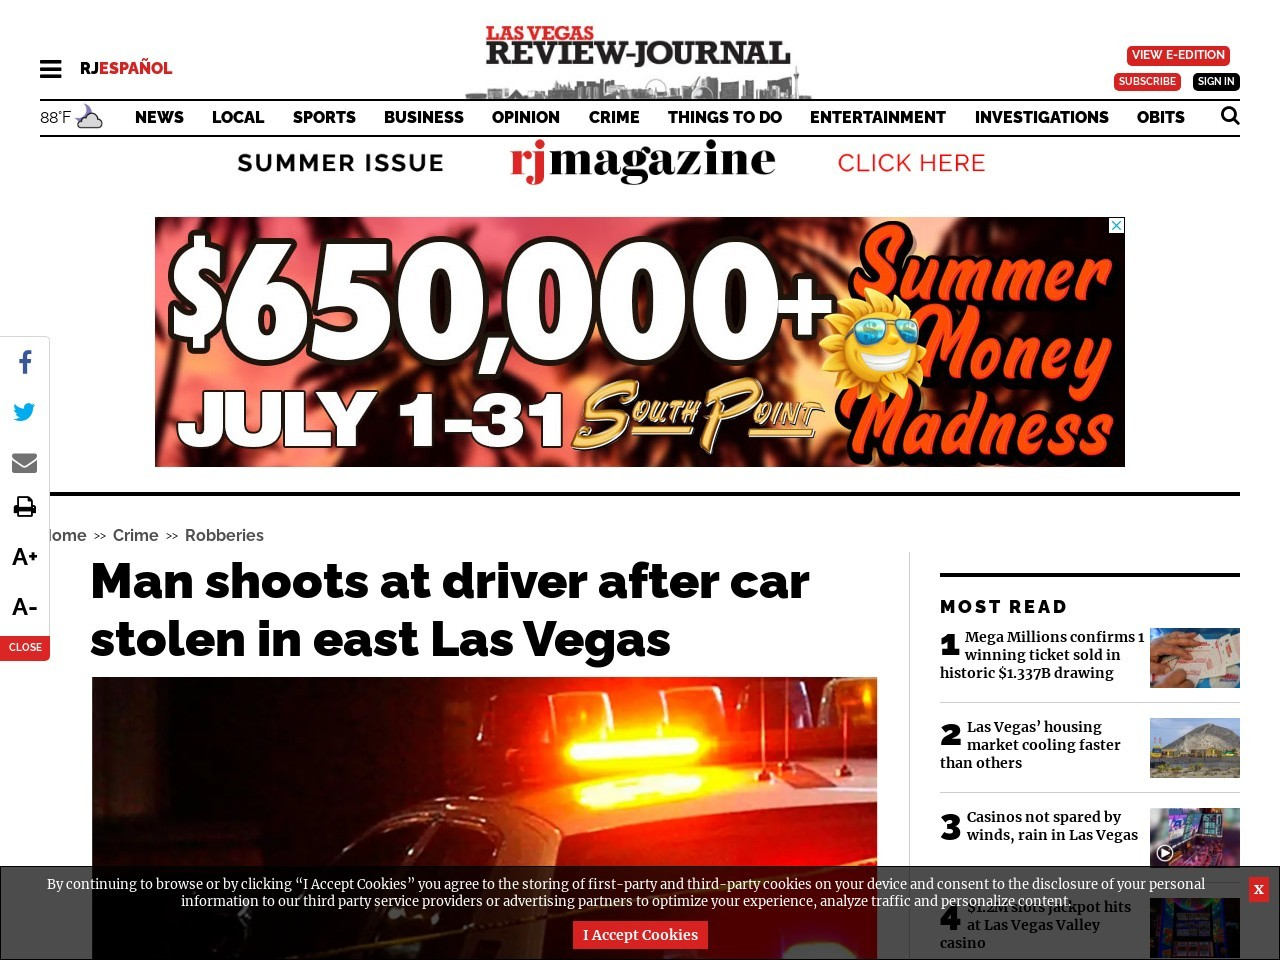 Man shoots at driver after car stolen in east Las Vegas